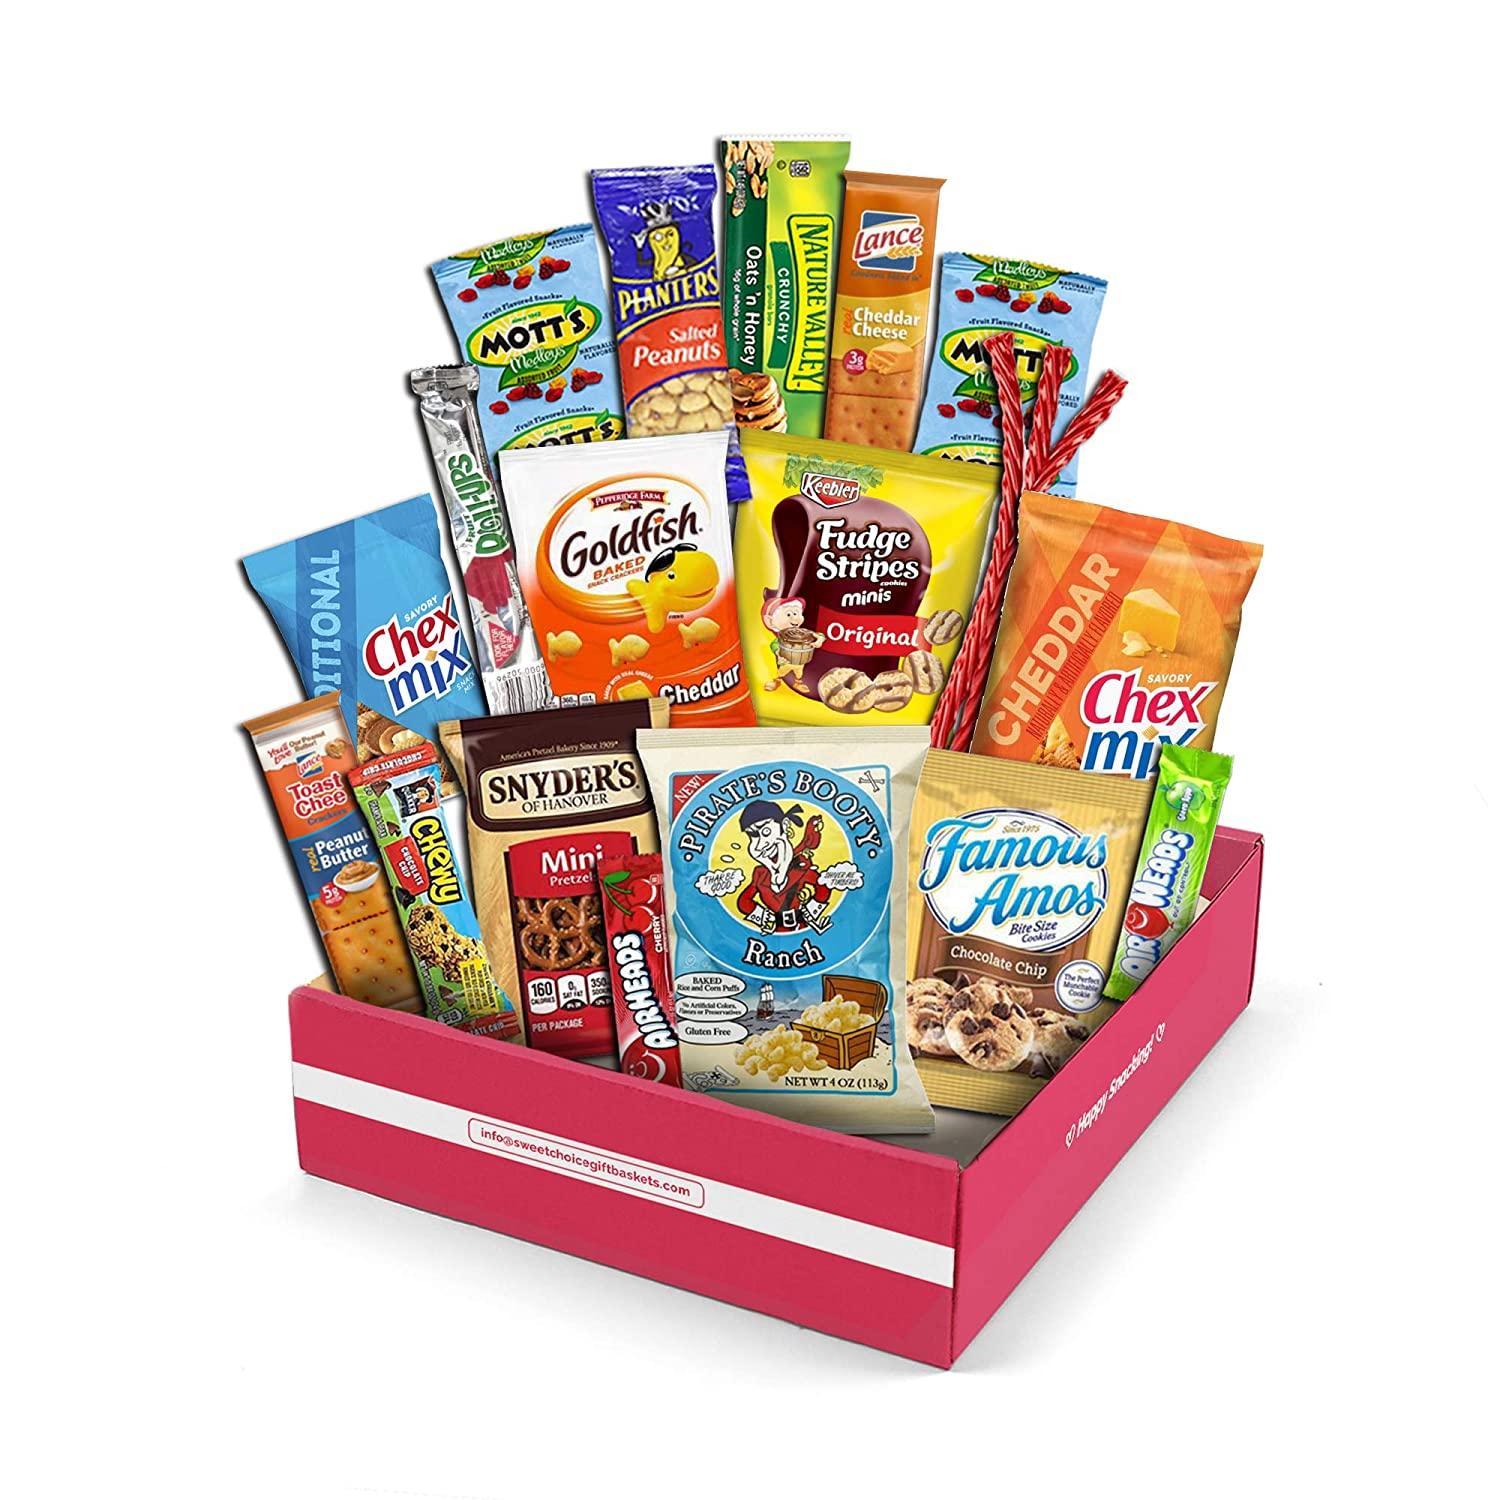 Snack Box Variety Pack, (20 Count) valintines Candy Gift Basket - College Student Care Package, Thanksgiving, Xmas Food Arrangement Chips, Cookies, Bars - Birthday Treats for Adults, Kids,